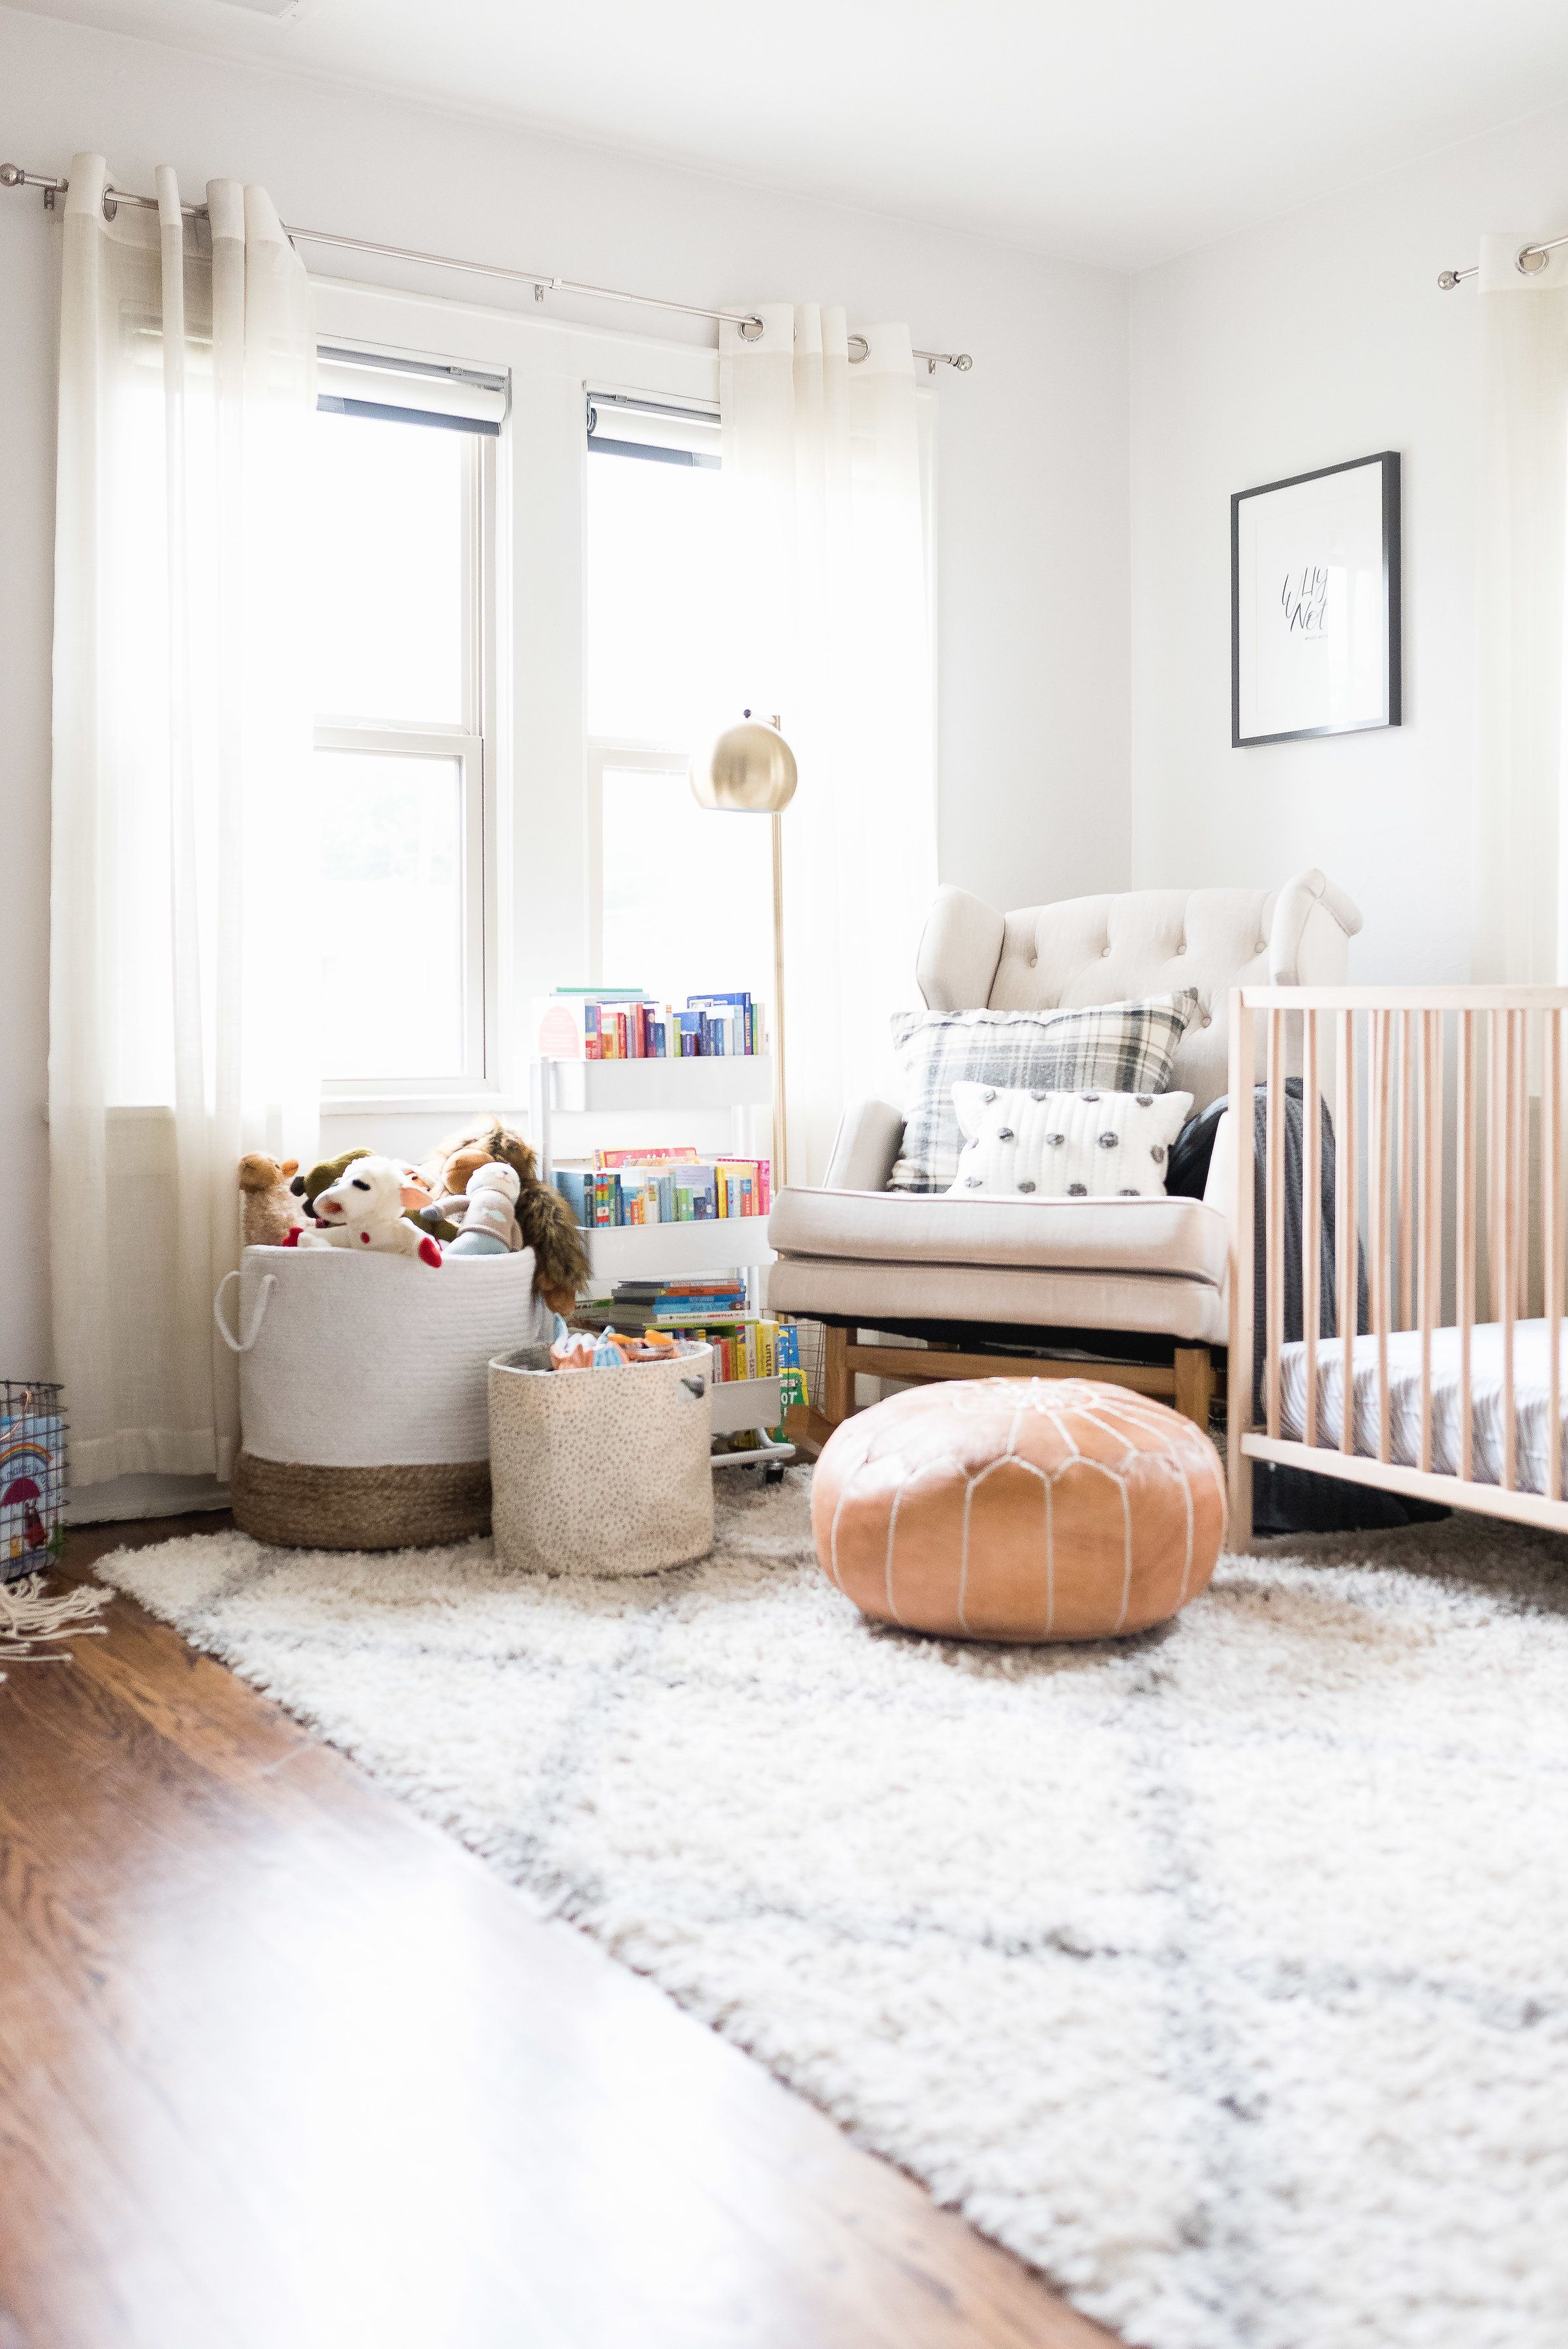 Mid Century Modern Nursery With Leather Moroccan Pouf And Woven